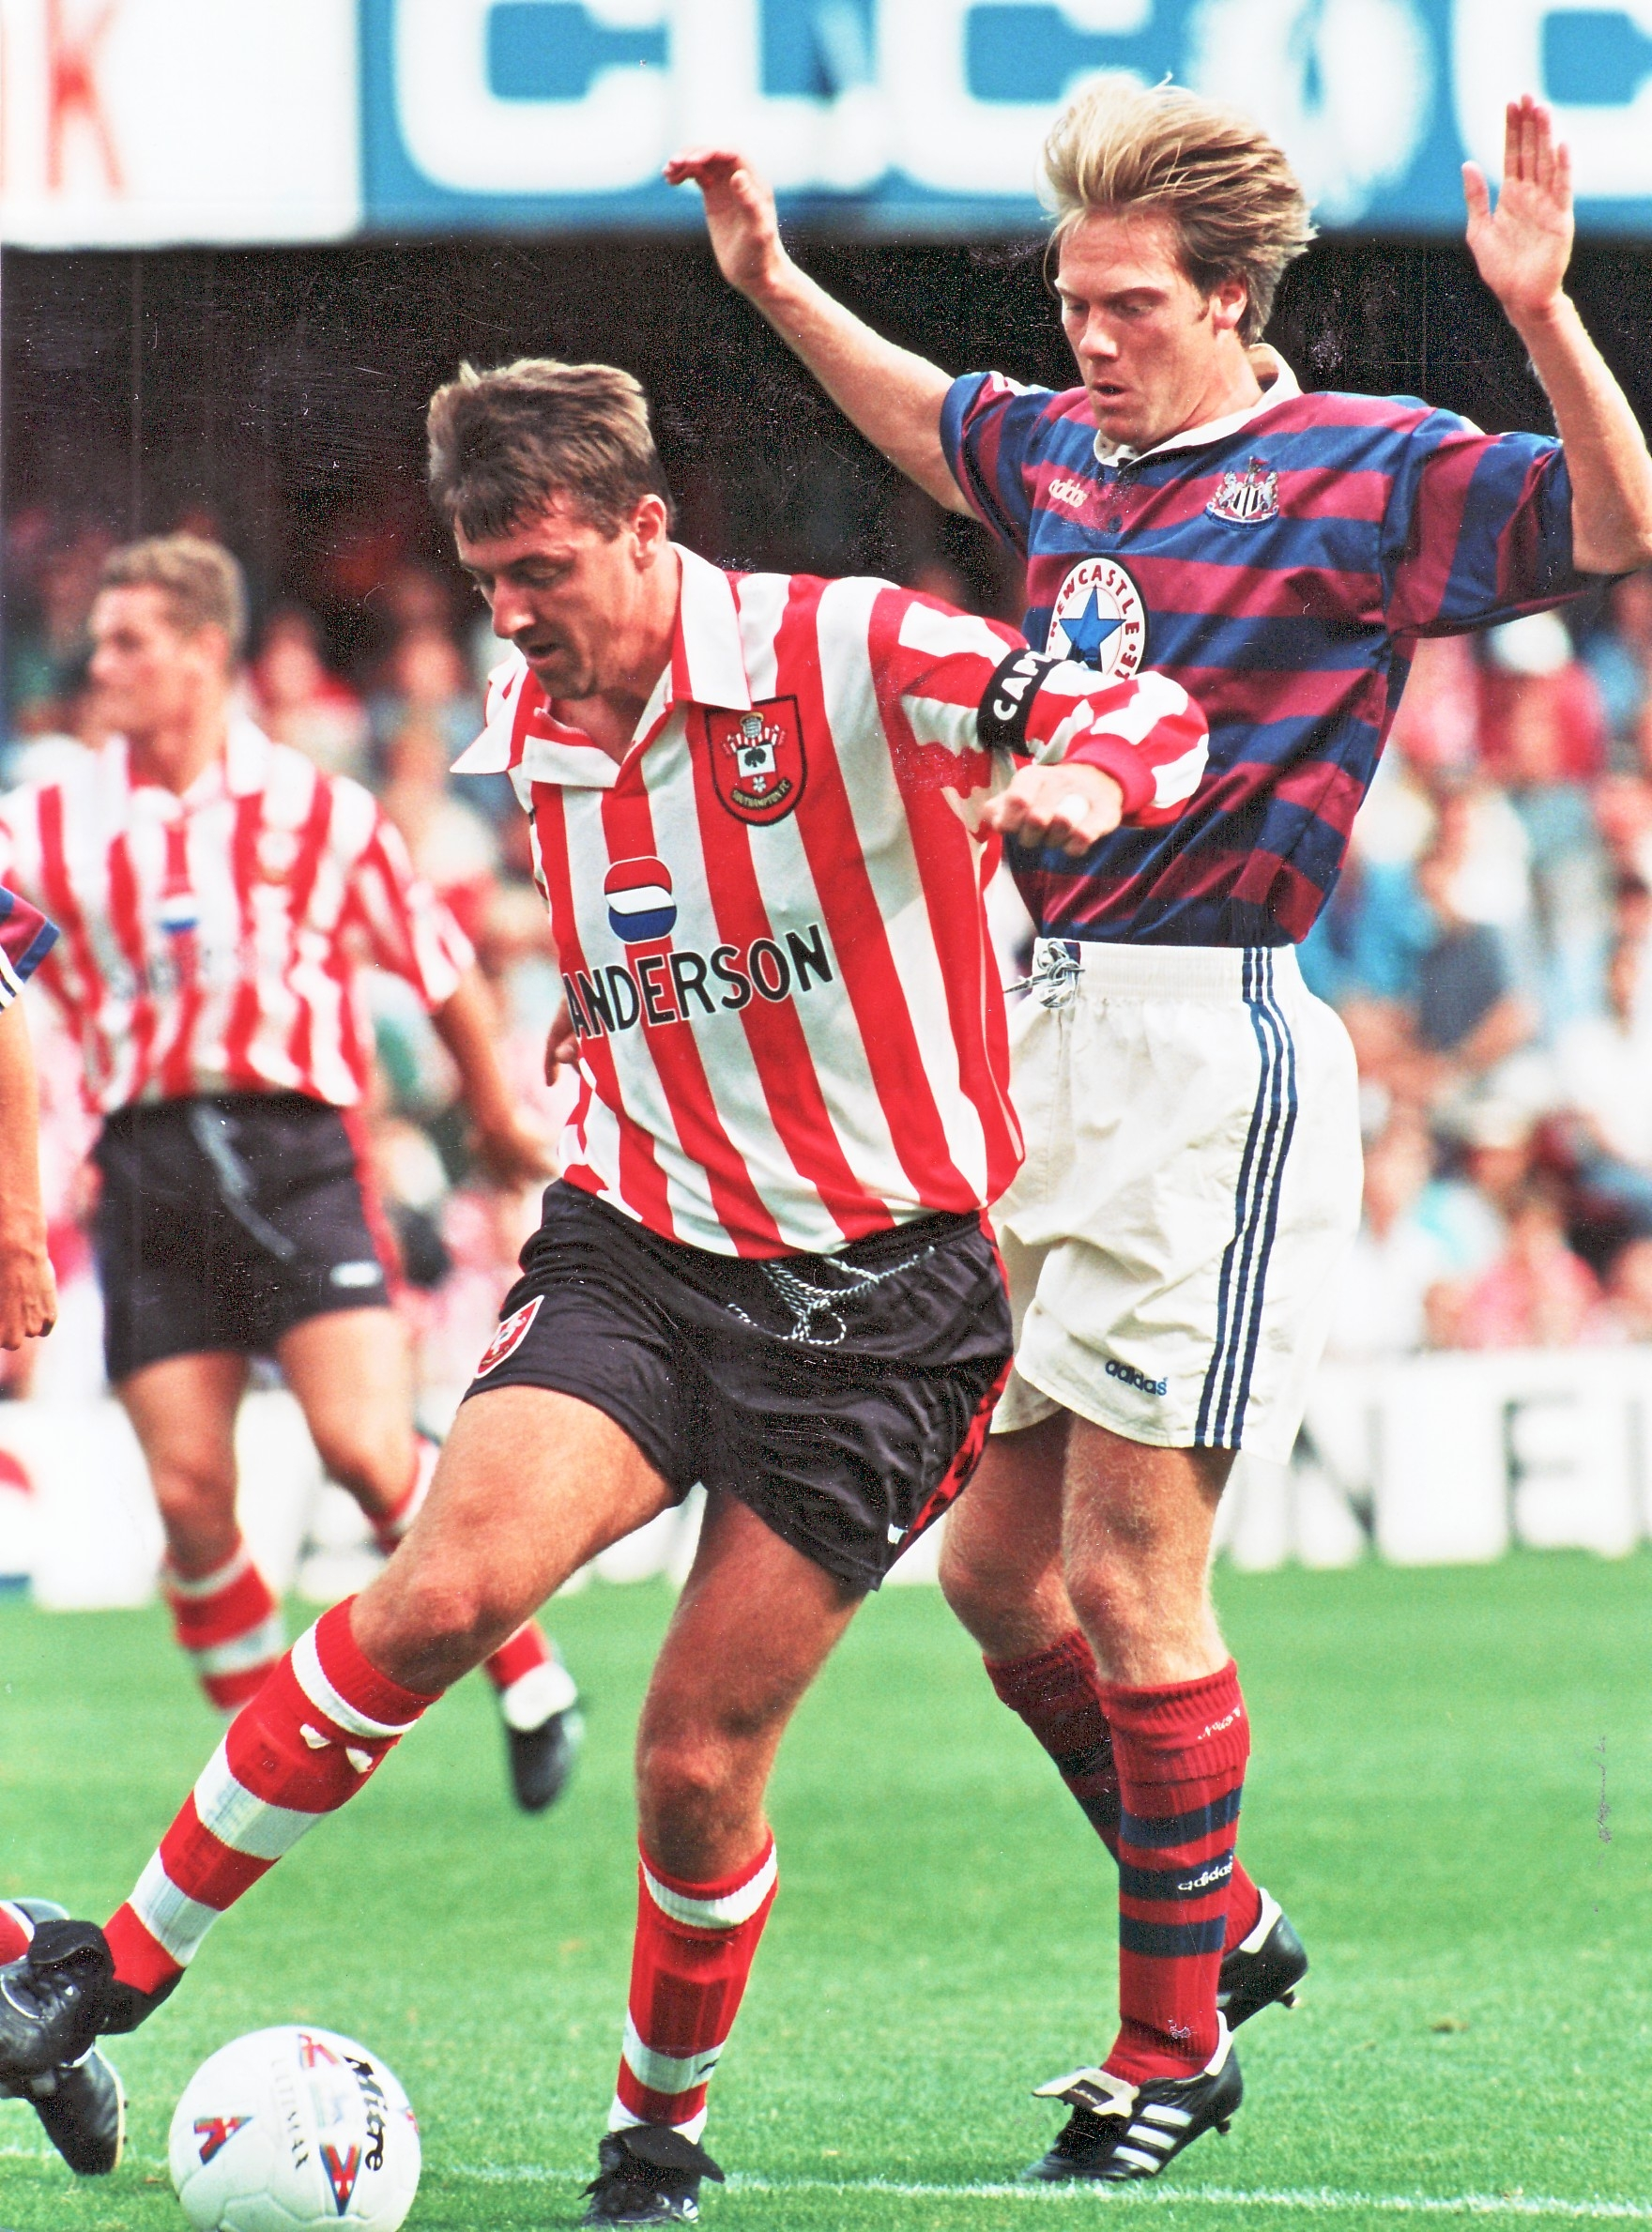 Le Tissier hopes for continuity